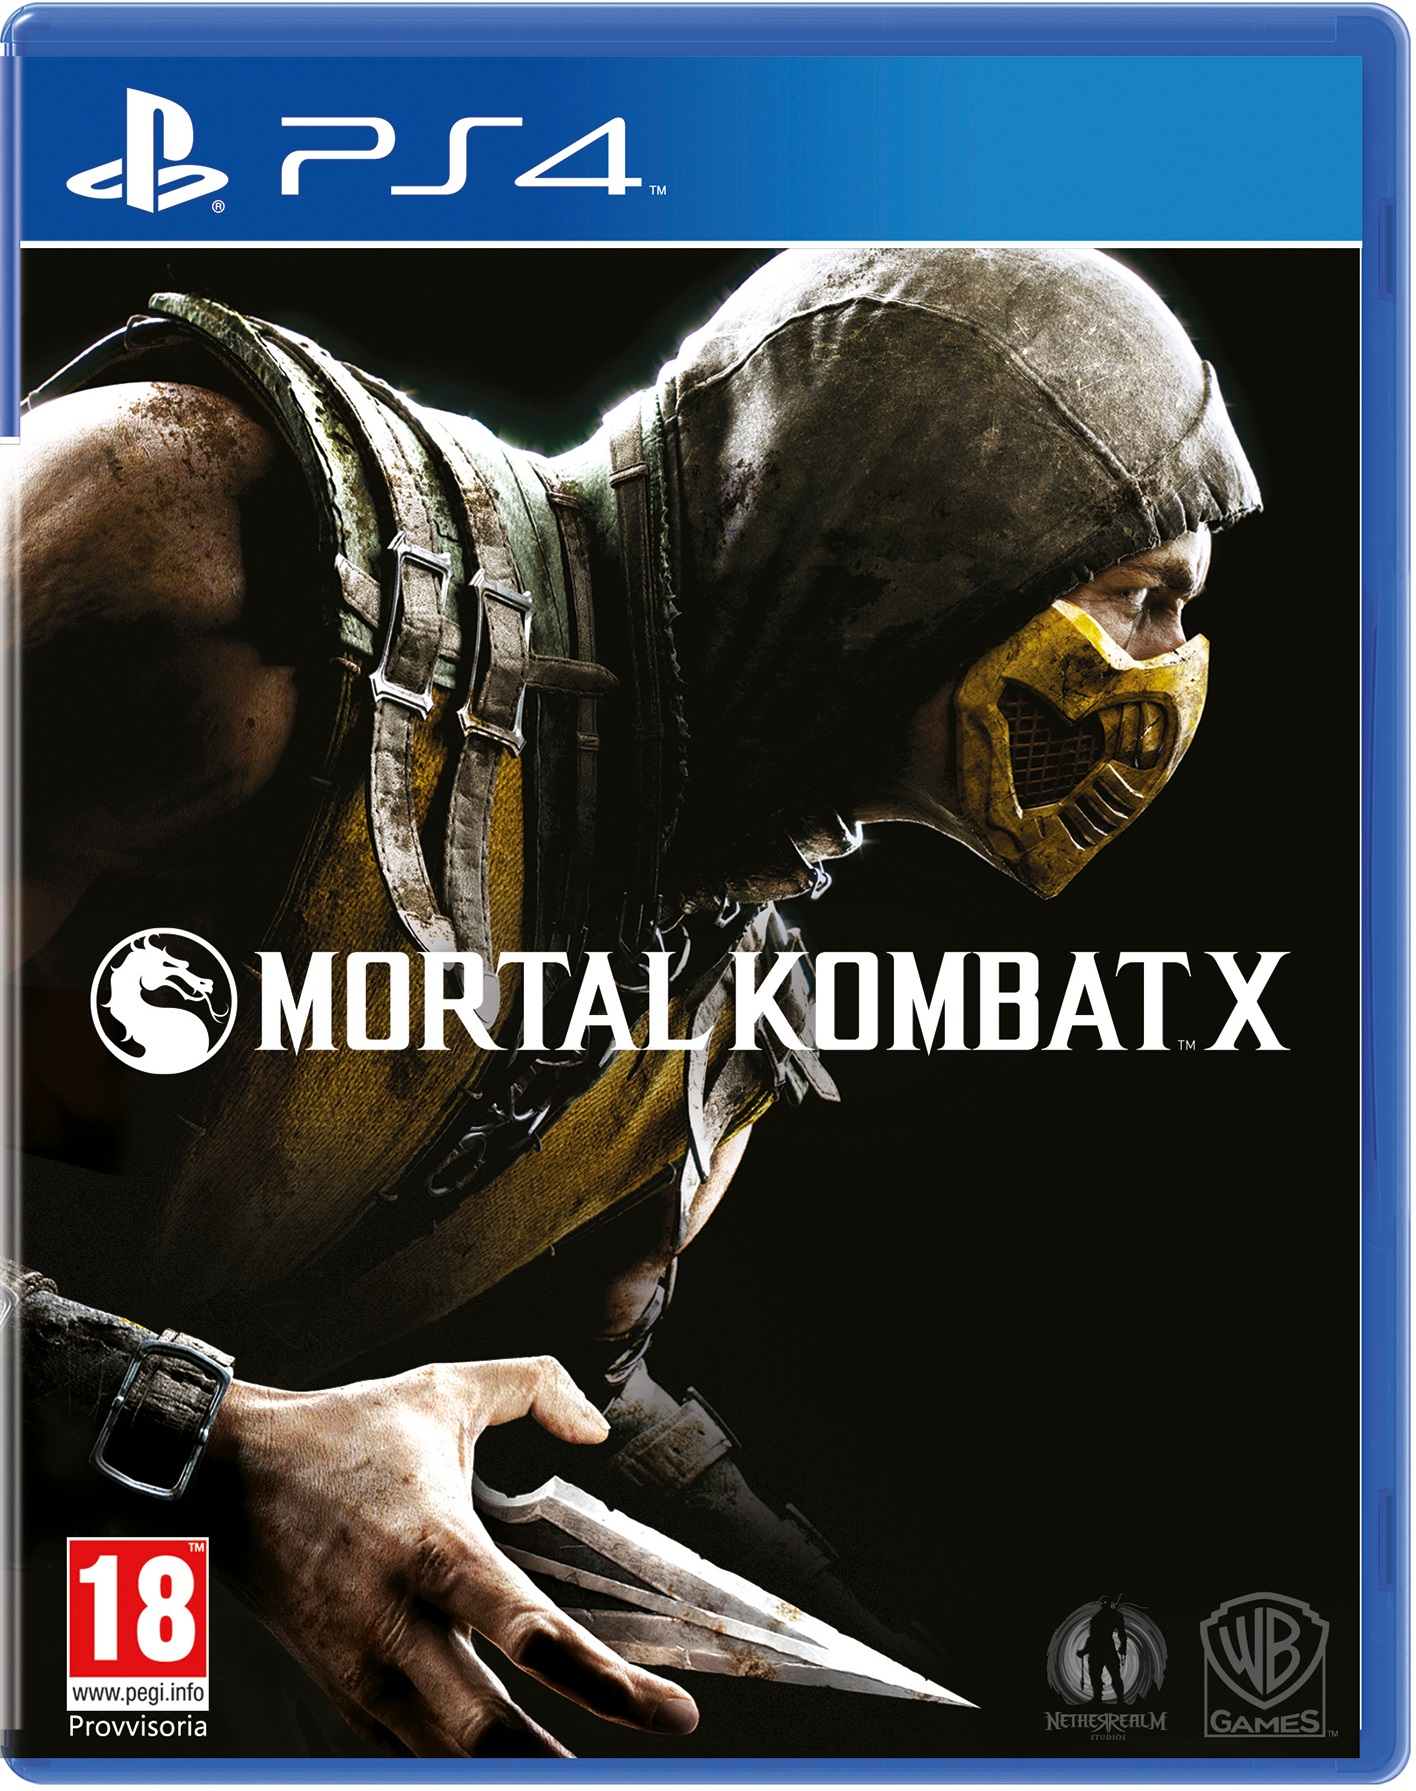 Mortal Kombat X (PS4) (GameReplay)